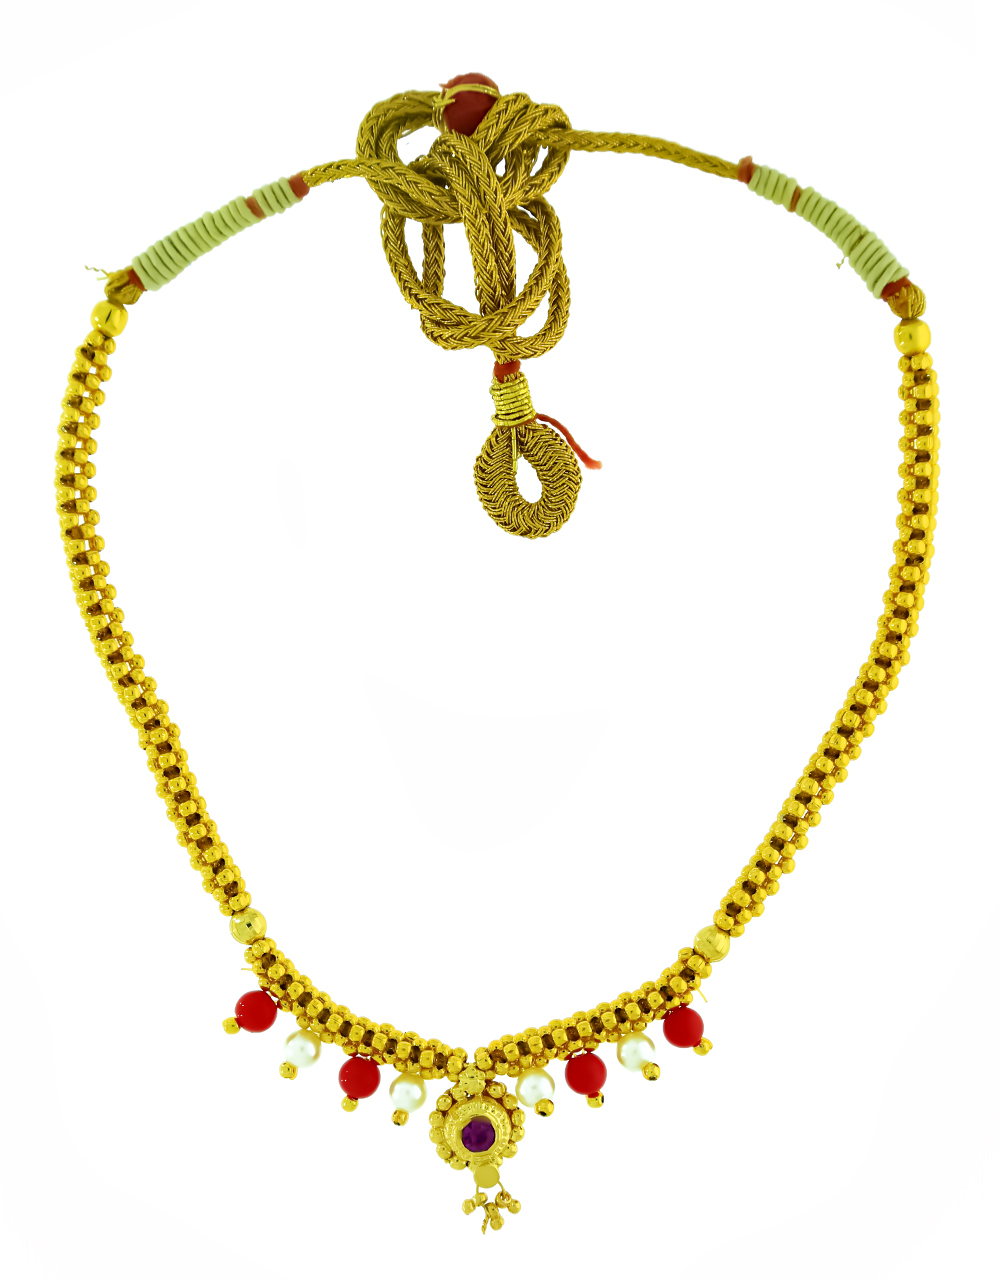 White-Red Beads Styled Adorable Thushi Necklace for Women